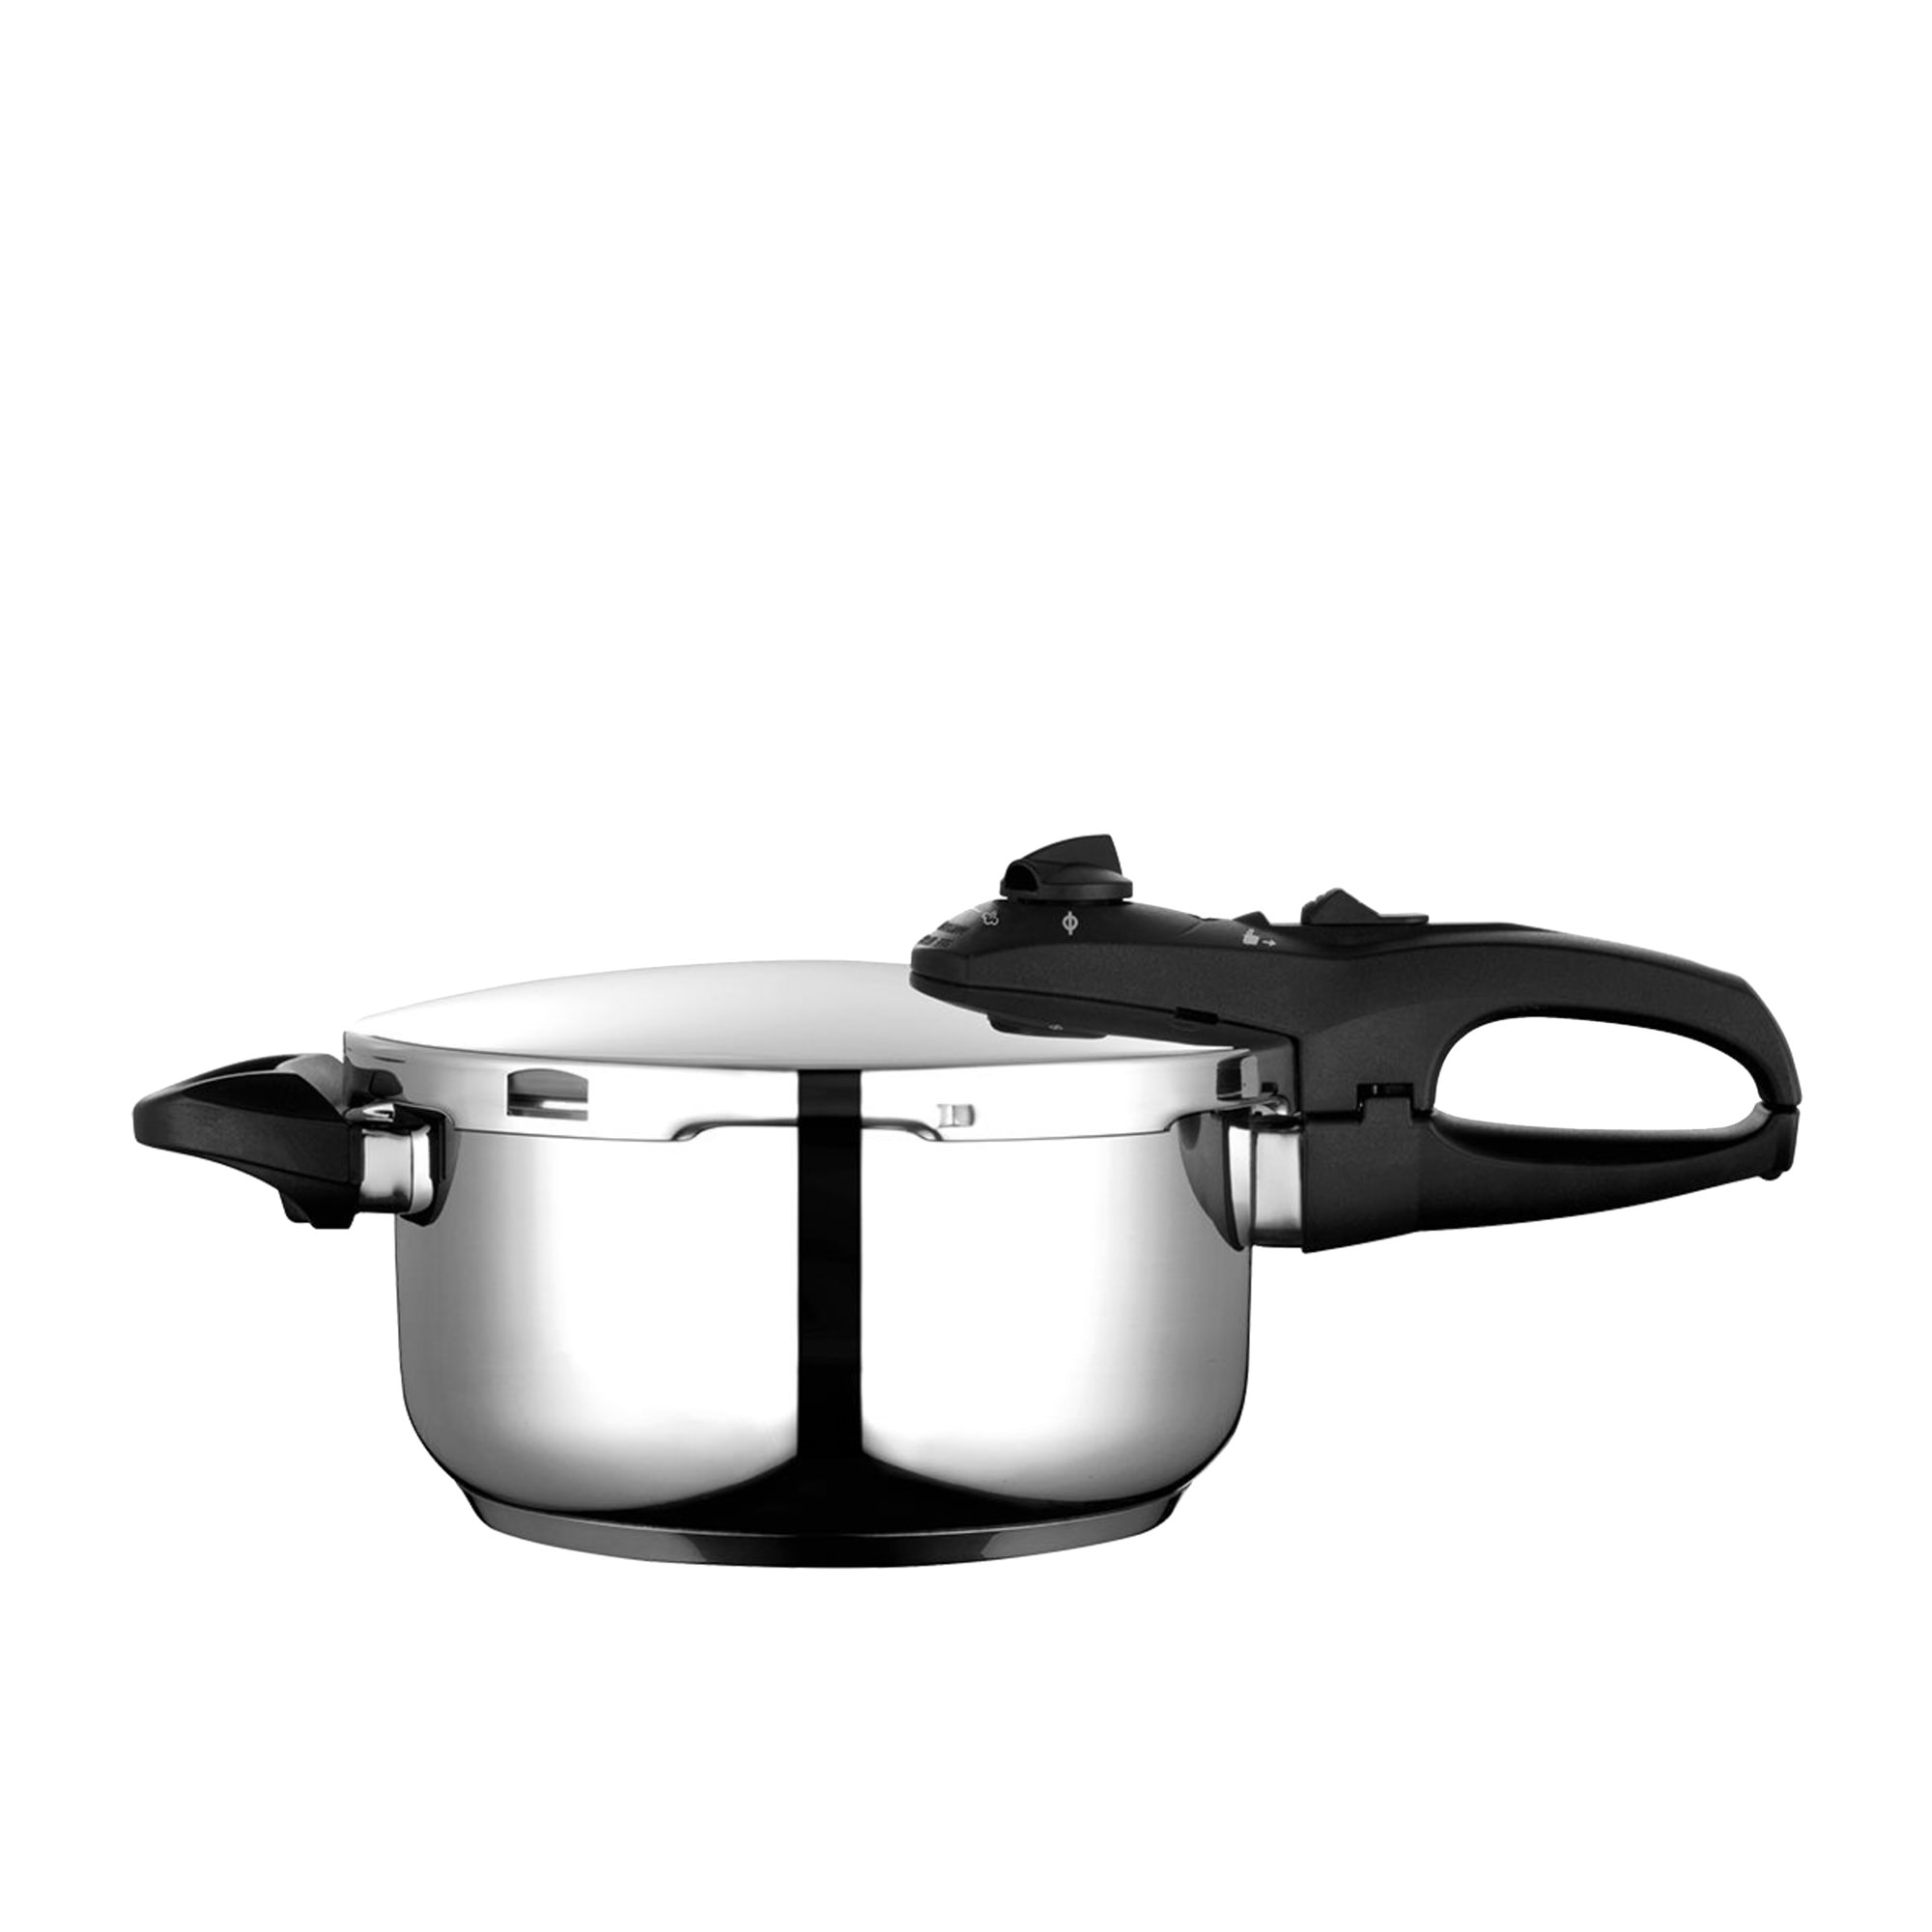 Fagor Duo Stainless Steel Pressure Cooker 4L